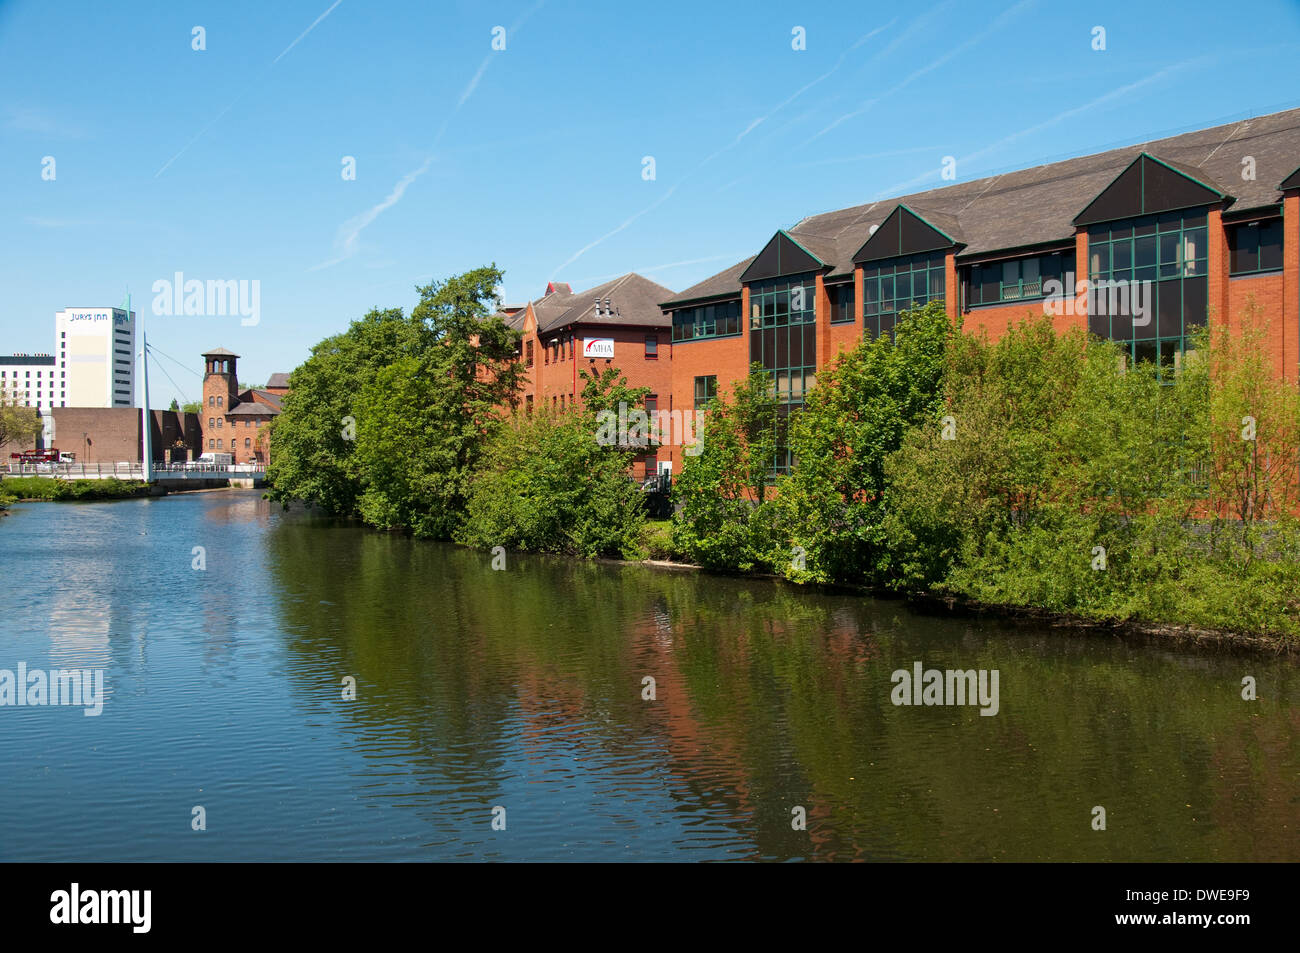 Apartment Buildings by the River Derwent in Derby City Centre, Derbyshire England UK - Stock Image